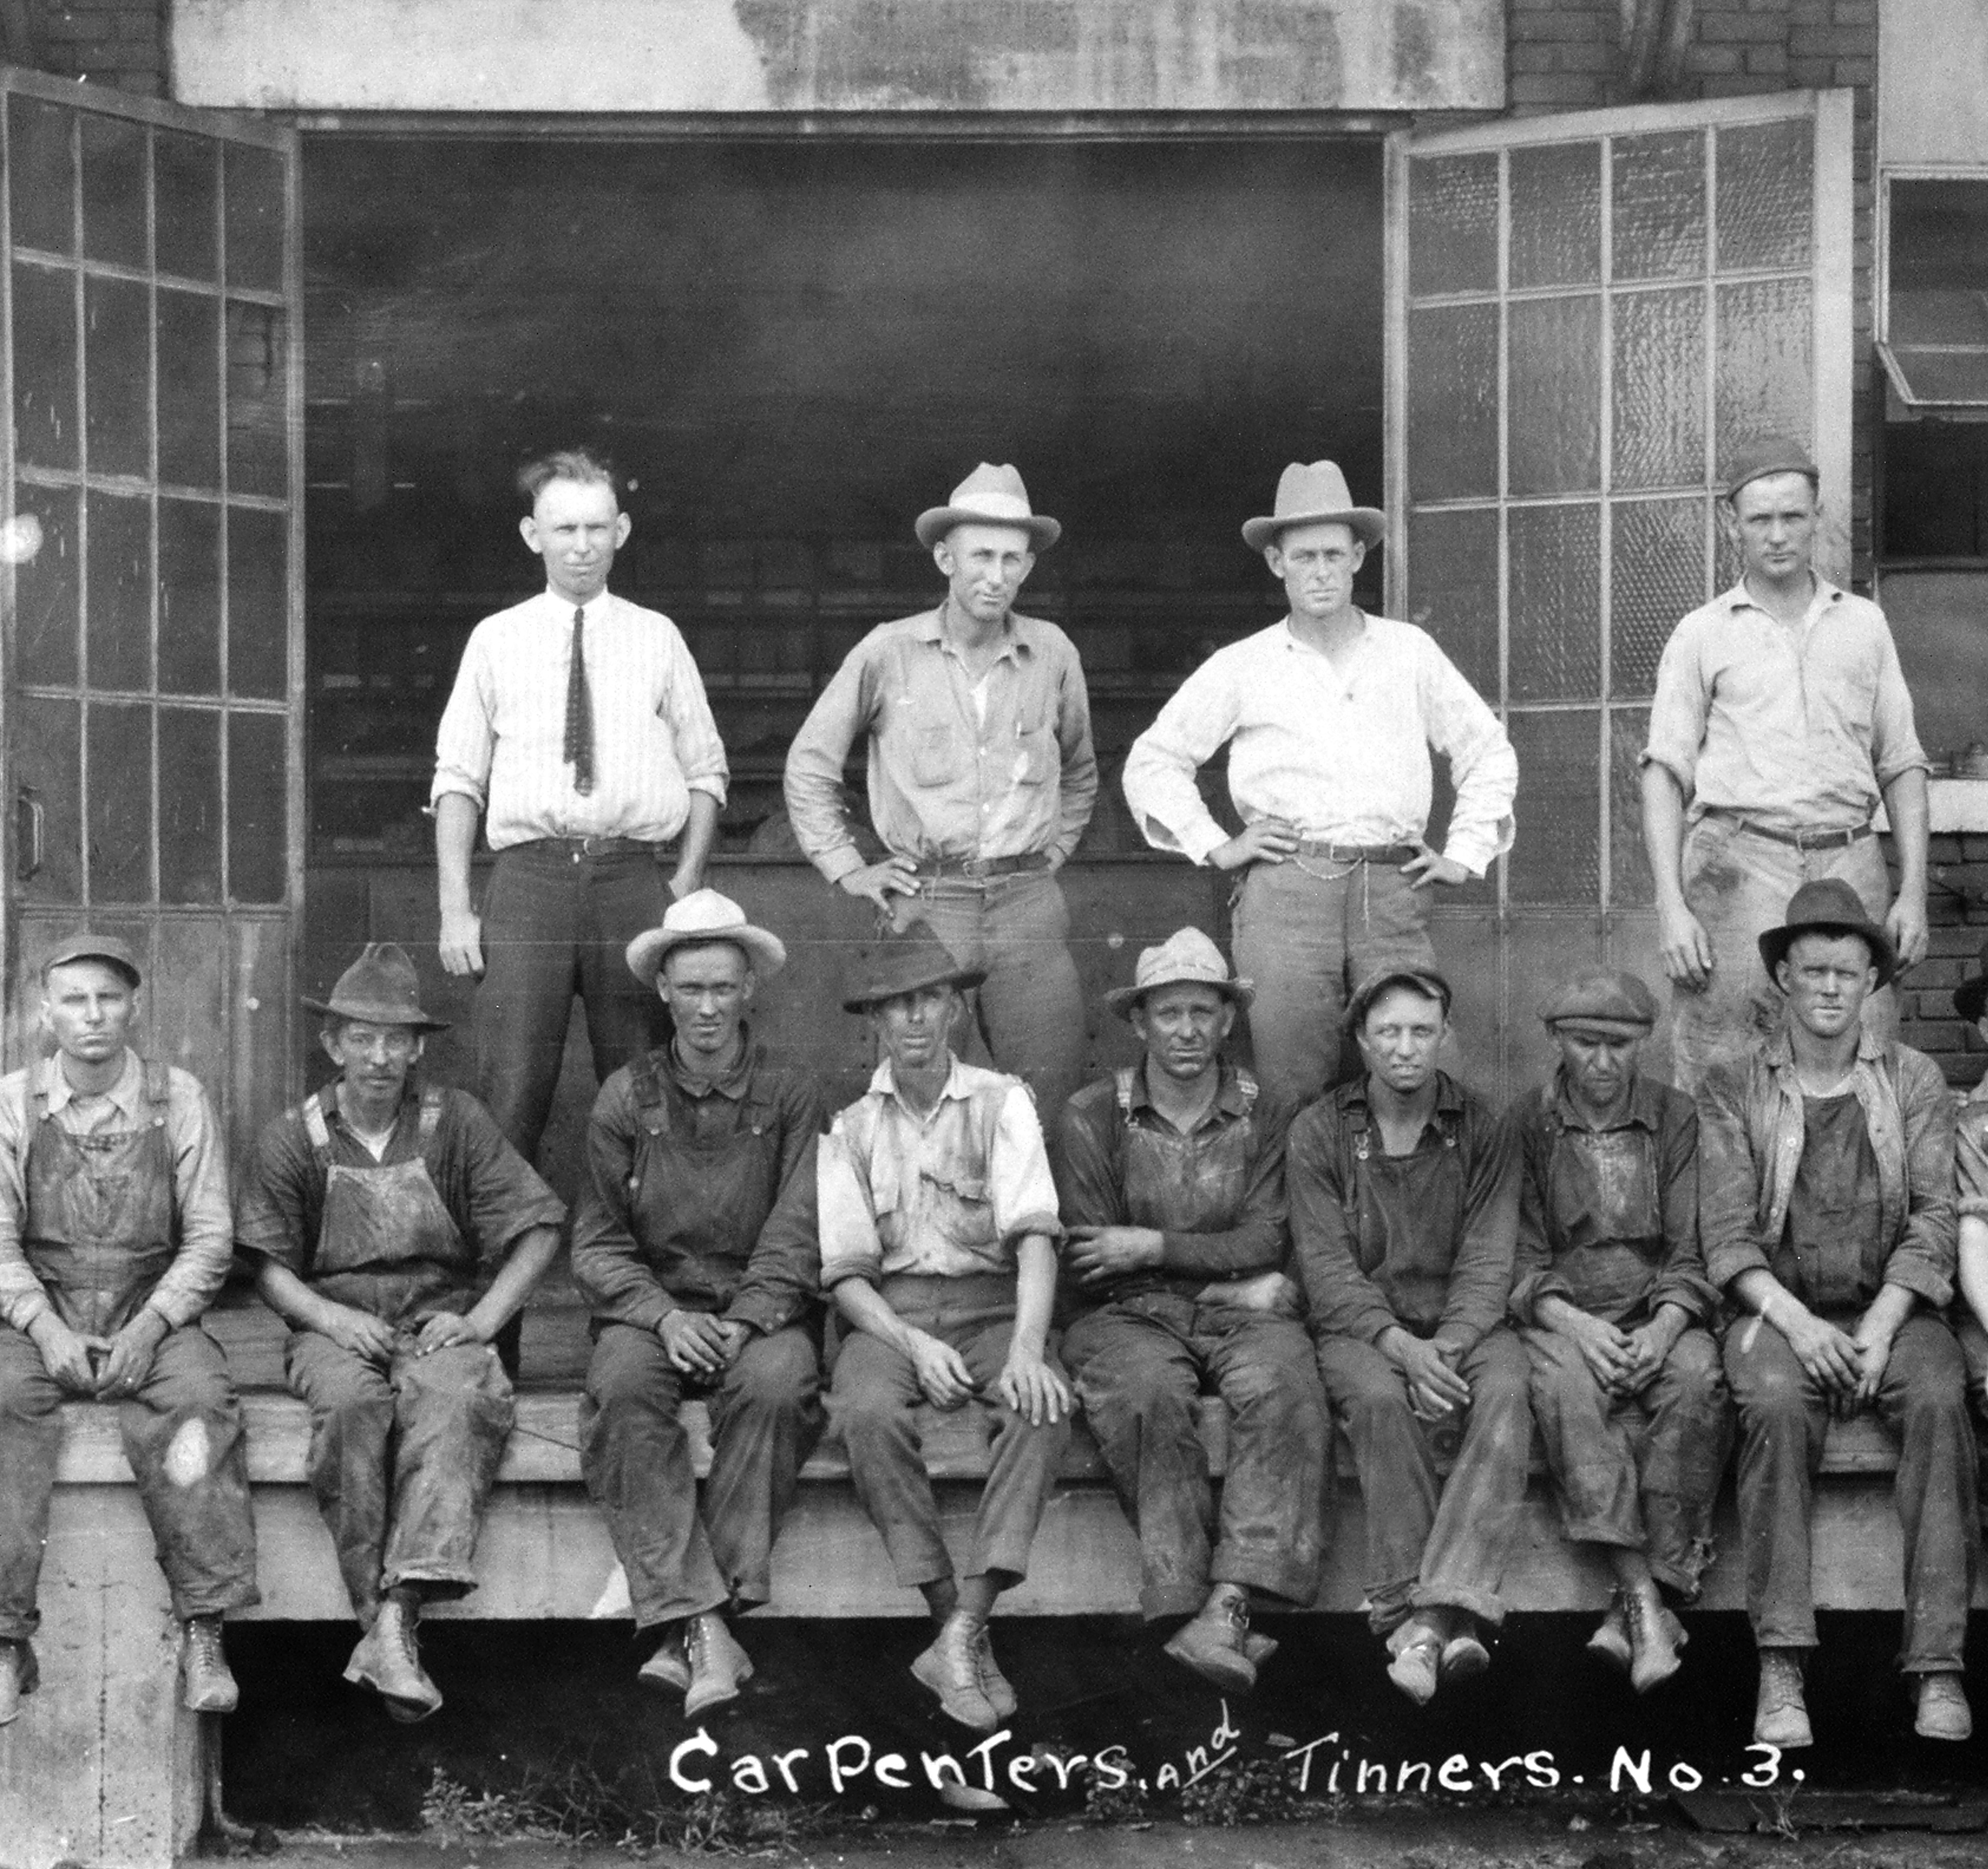 cosden refinery image of employees